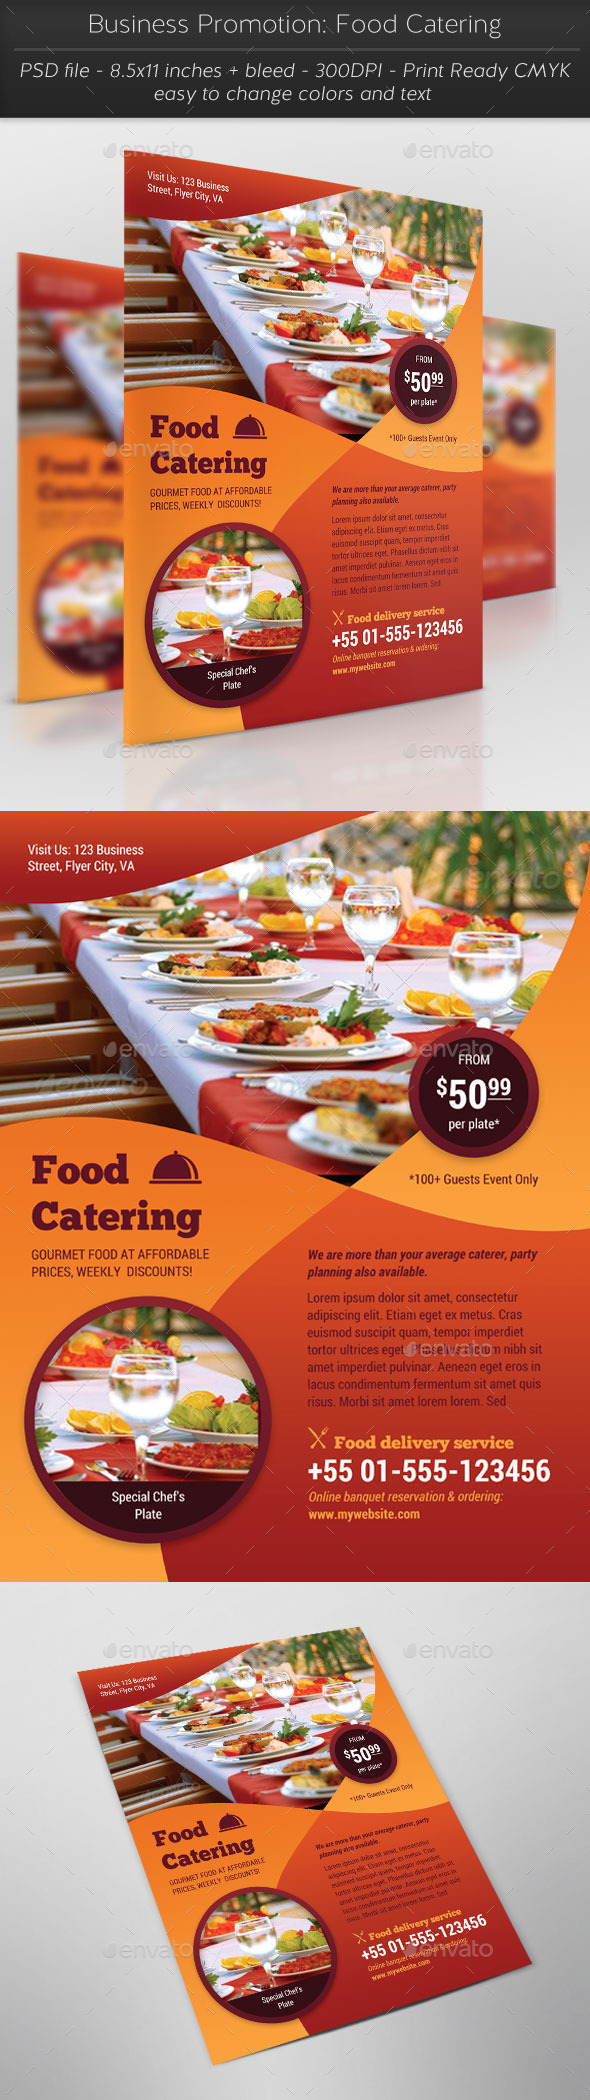 Business Promotion: Food Catering - Restaurant Flyers